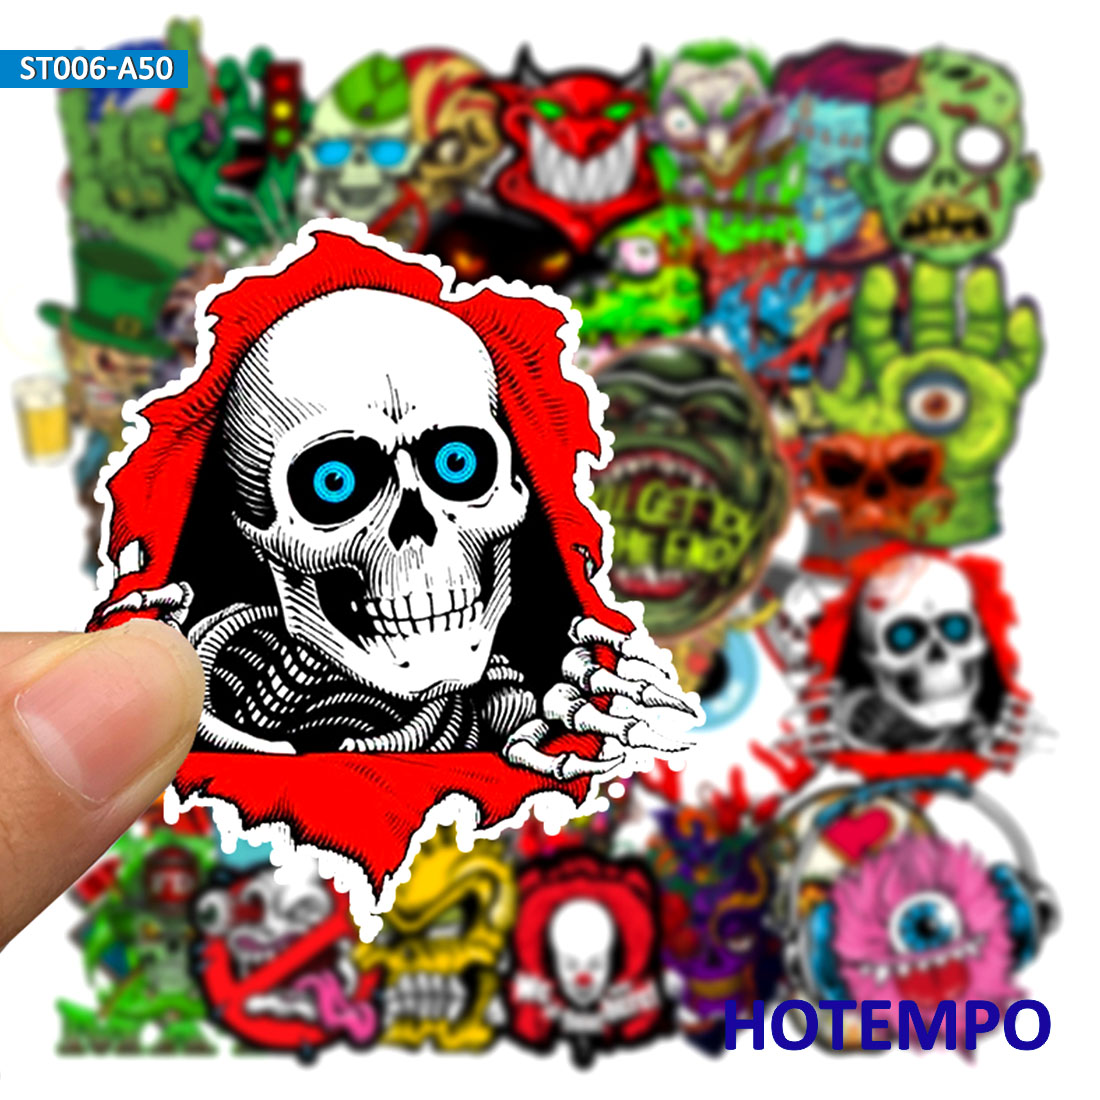 50pcs Mixed Horror Series Stickers For DIY Mobile Phone Laptop Luggage Suitcase Guitar Skateboard Fixed Gear Decal Stickers